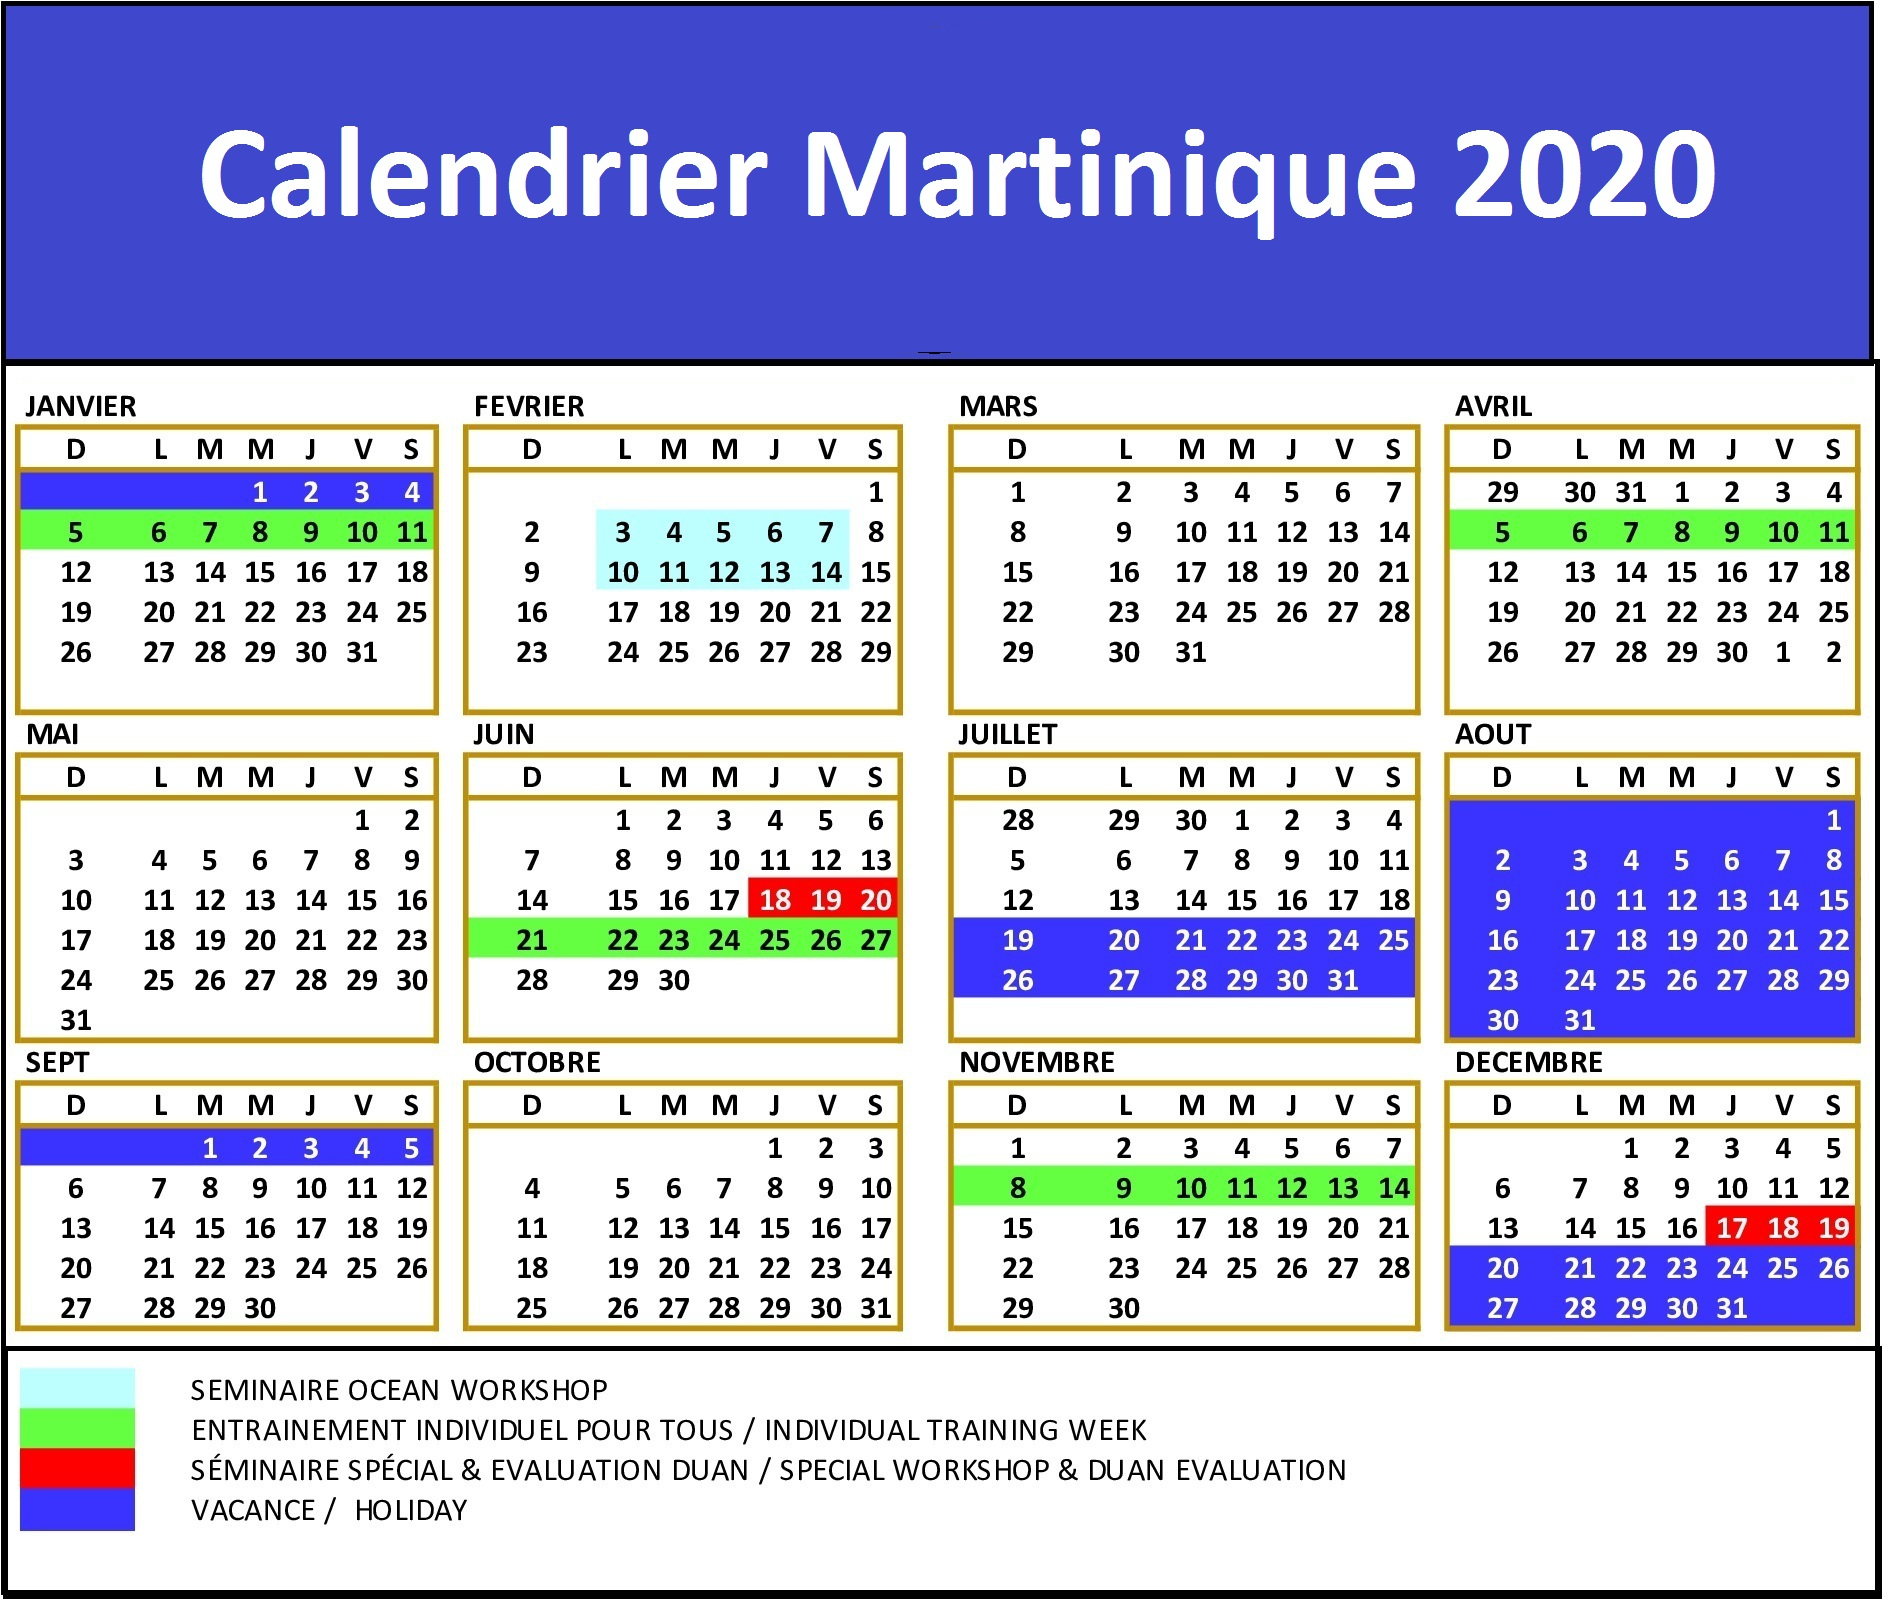 Calendrier Carnaval Martinique 2020